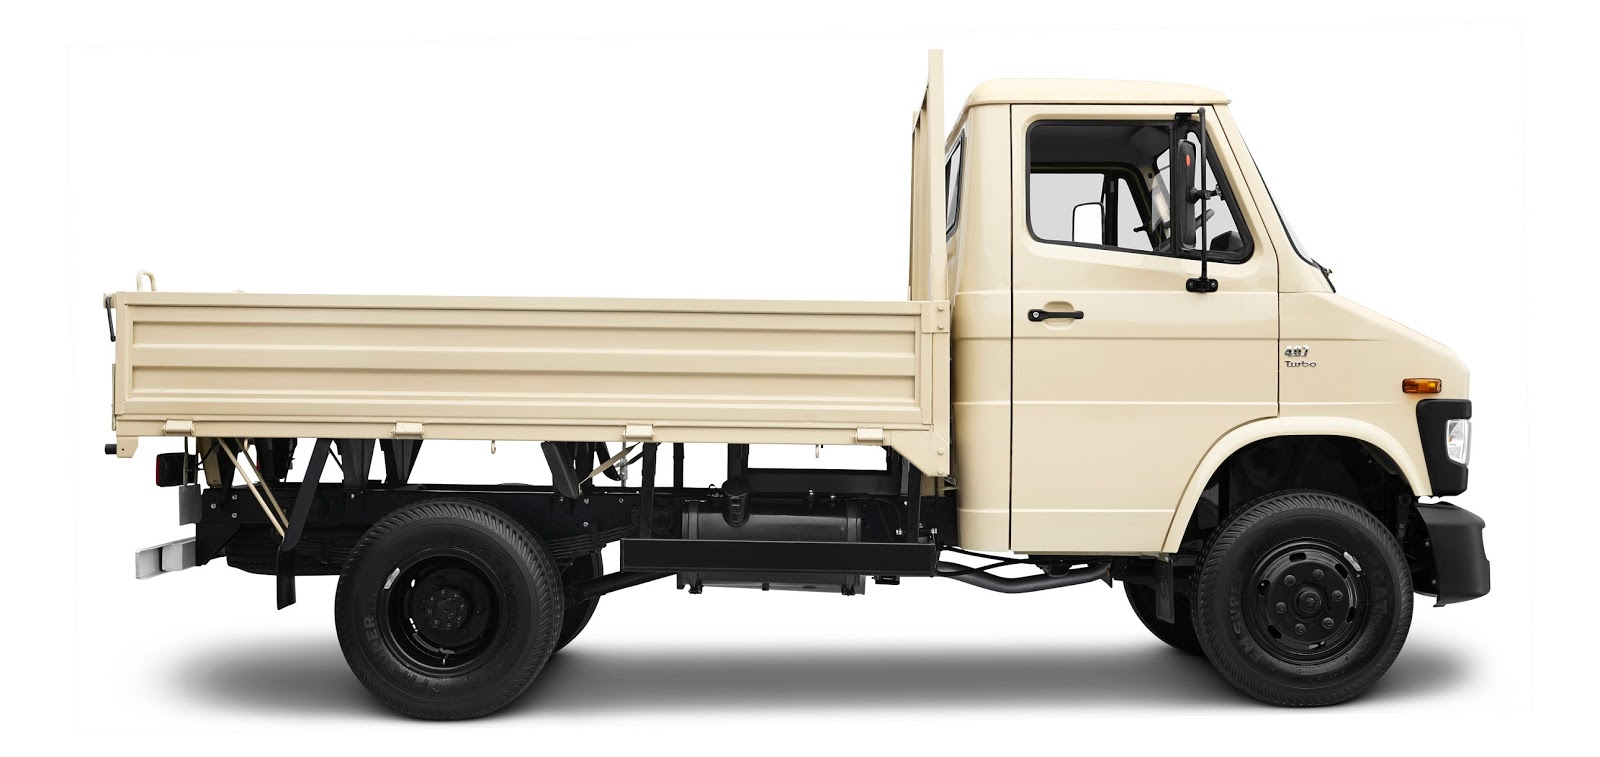 India S Most Popular Light Commercial Vehicle Tata 407